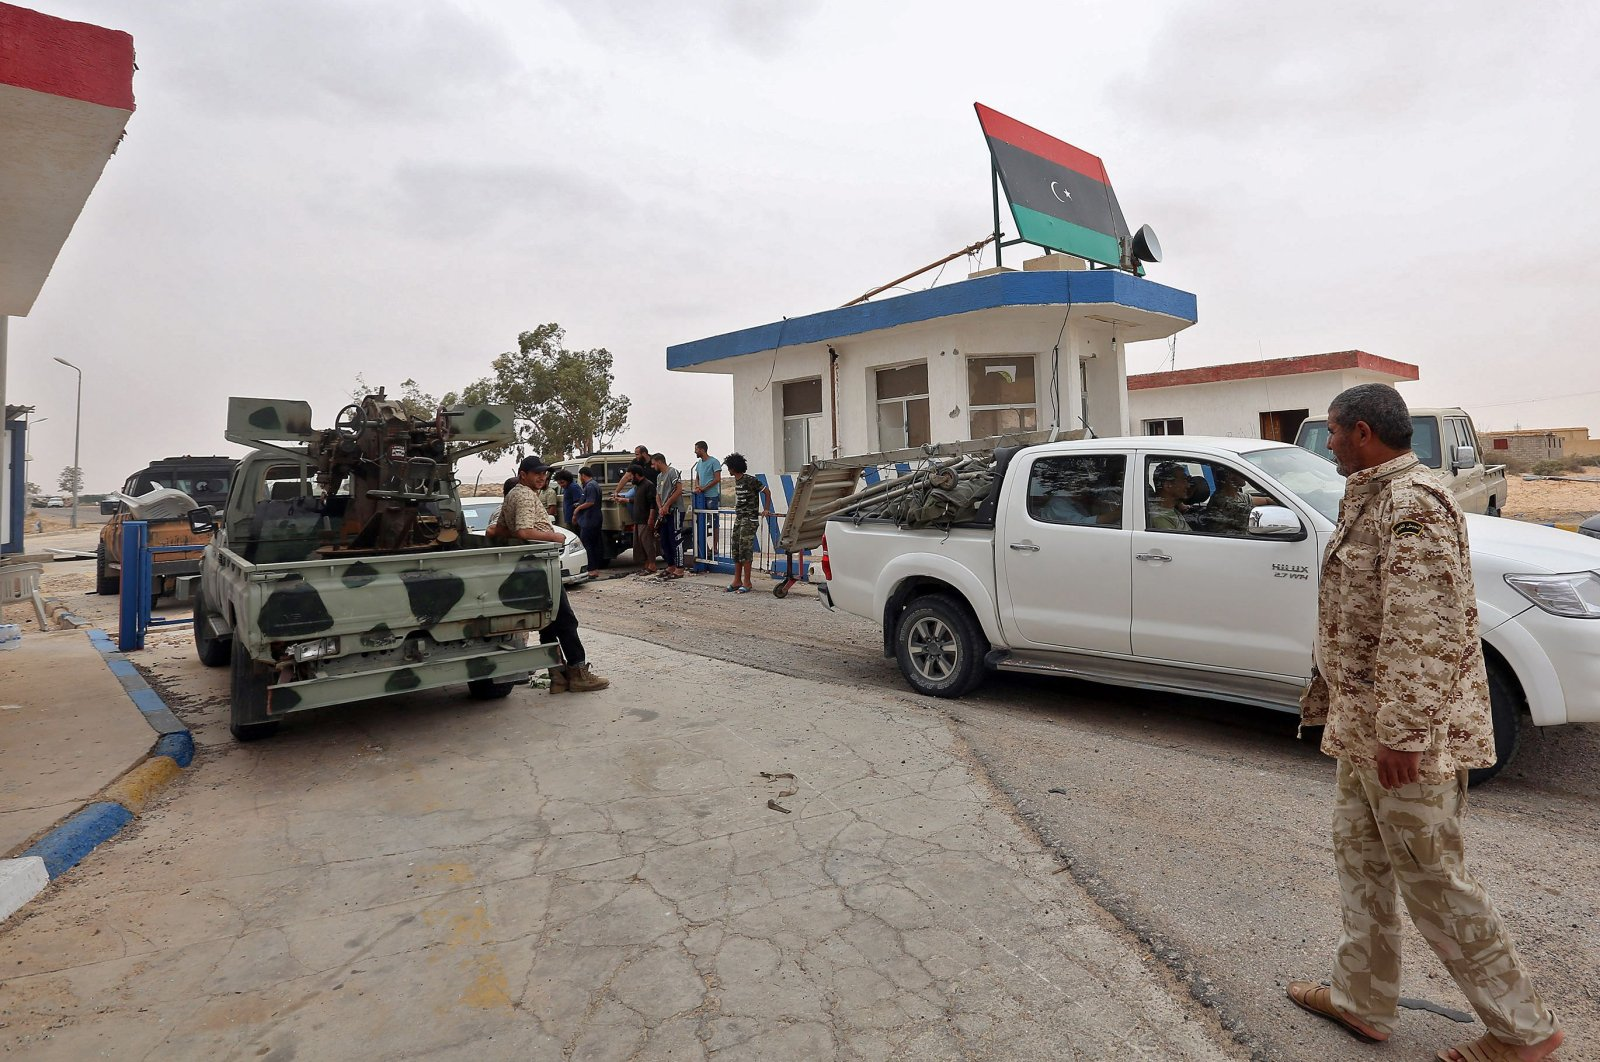 Vehicles of forces loyal to Libya's U.N.-recognized Government of National Accord (GNA) are seen outside a checkpoint at al-Watiya airbase, which they seized control of, southwest of the capital Tripoli, May 18, 2020. (AFP Photo)